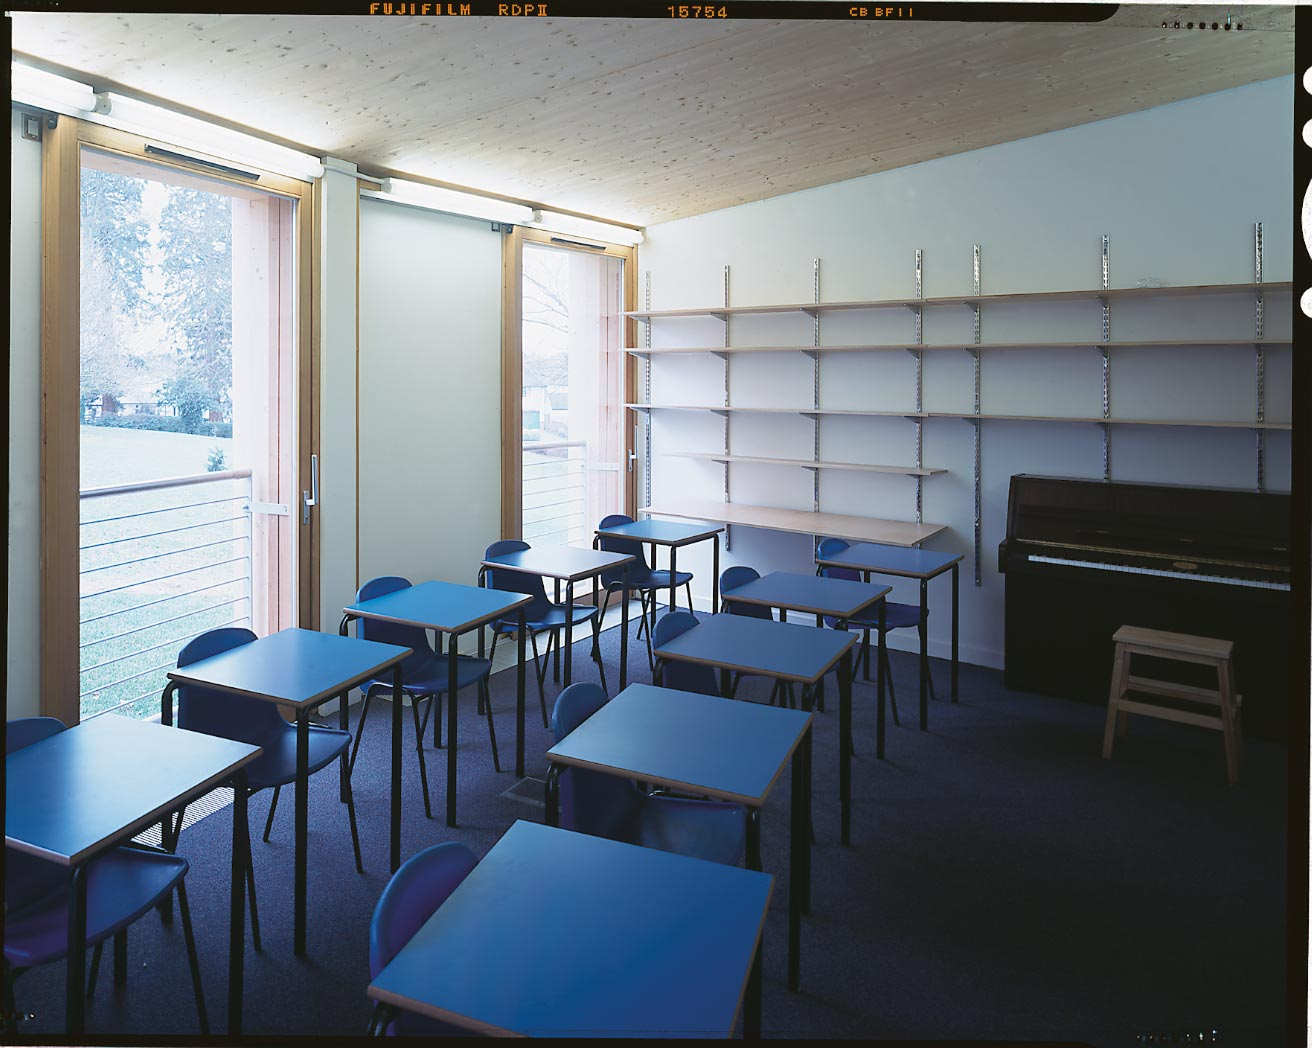 Shrewsbury School Music School - Classroom interior